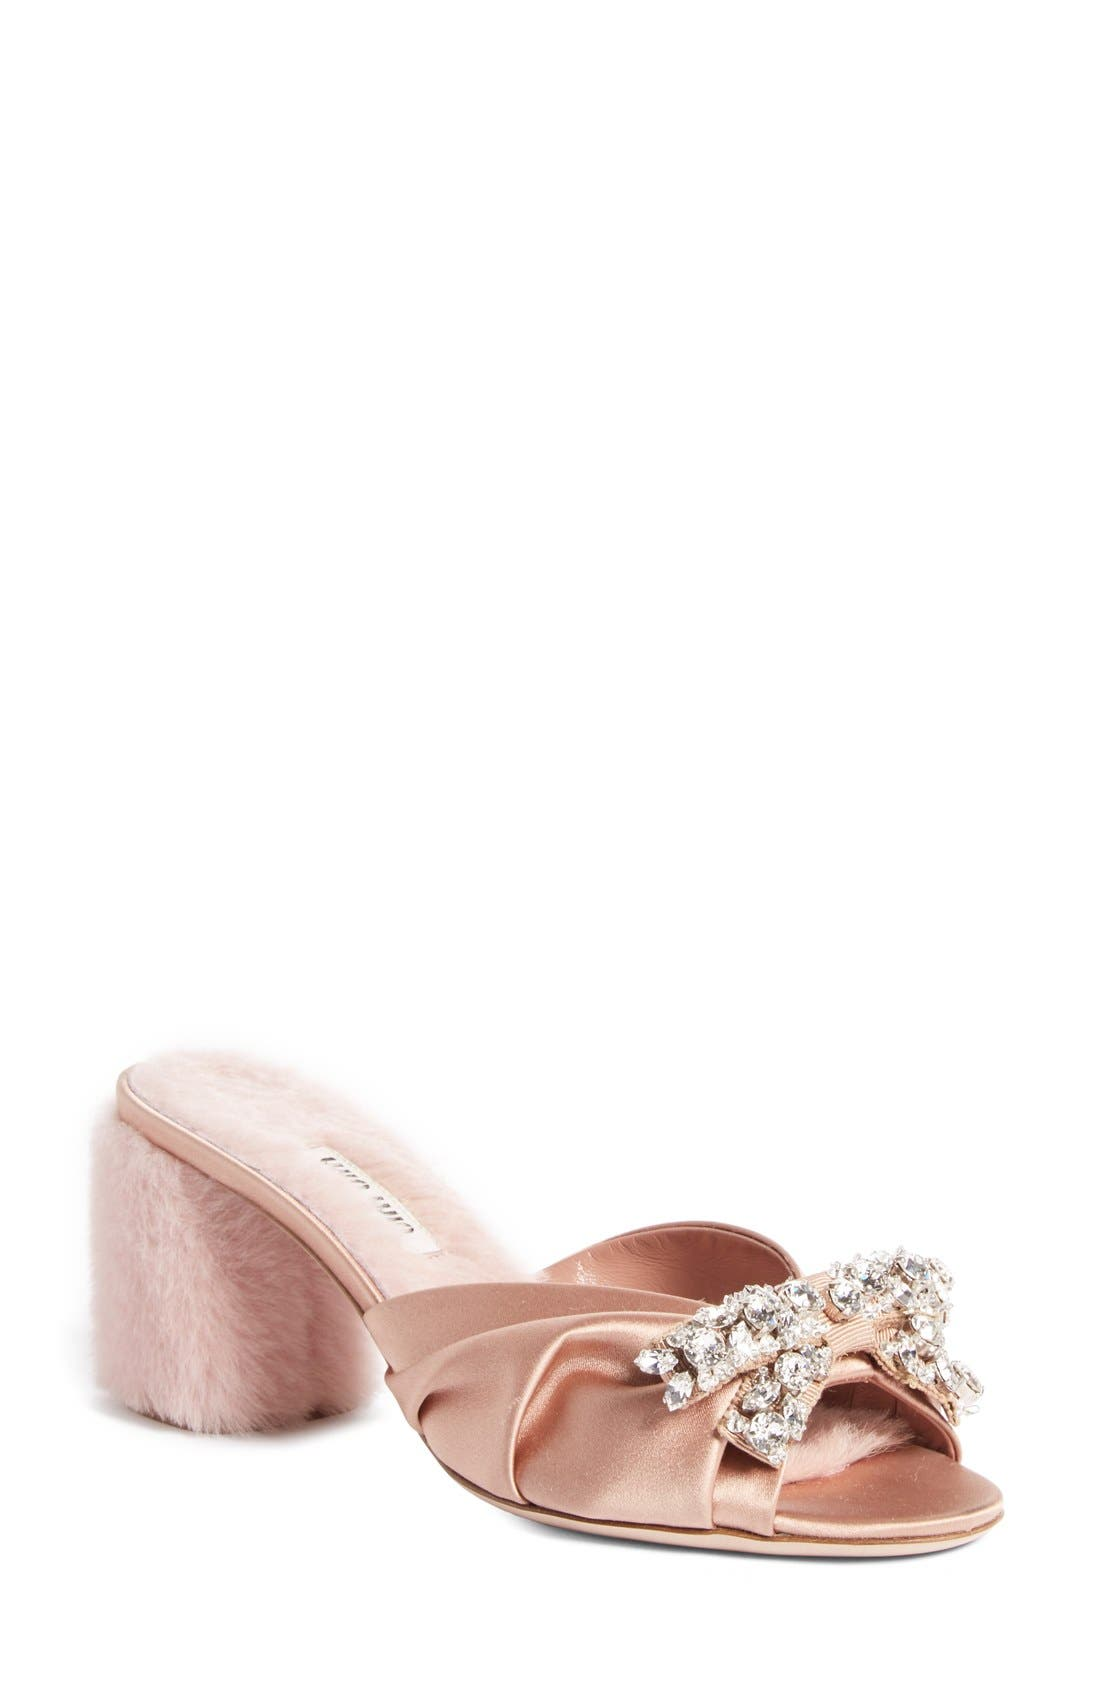 Main Image - Miu Miu Crystal Embellished Slide Sandal (Women)